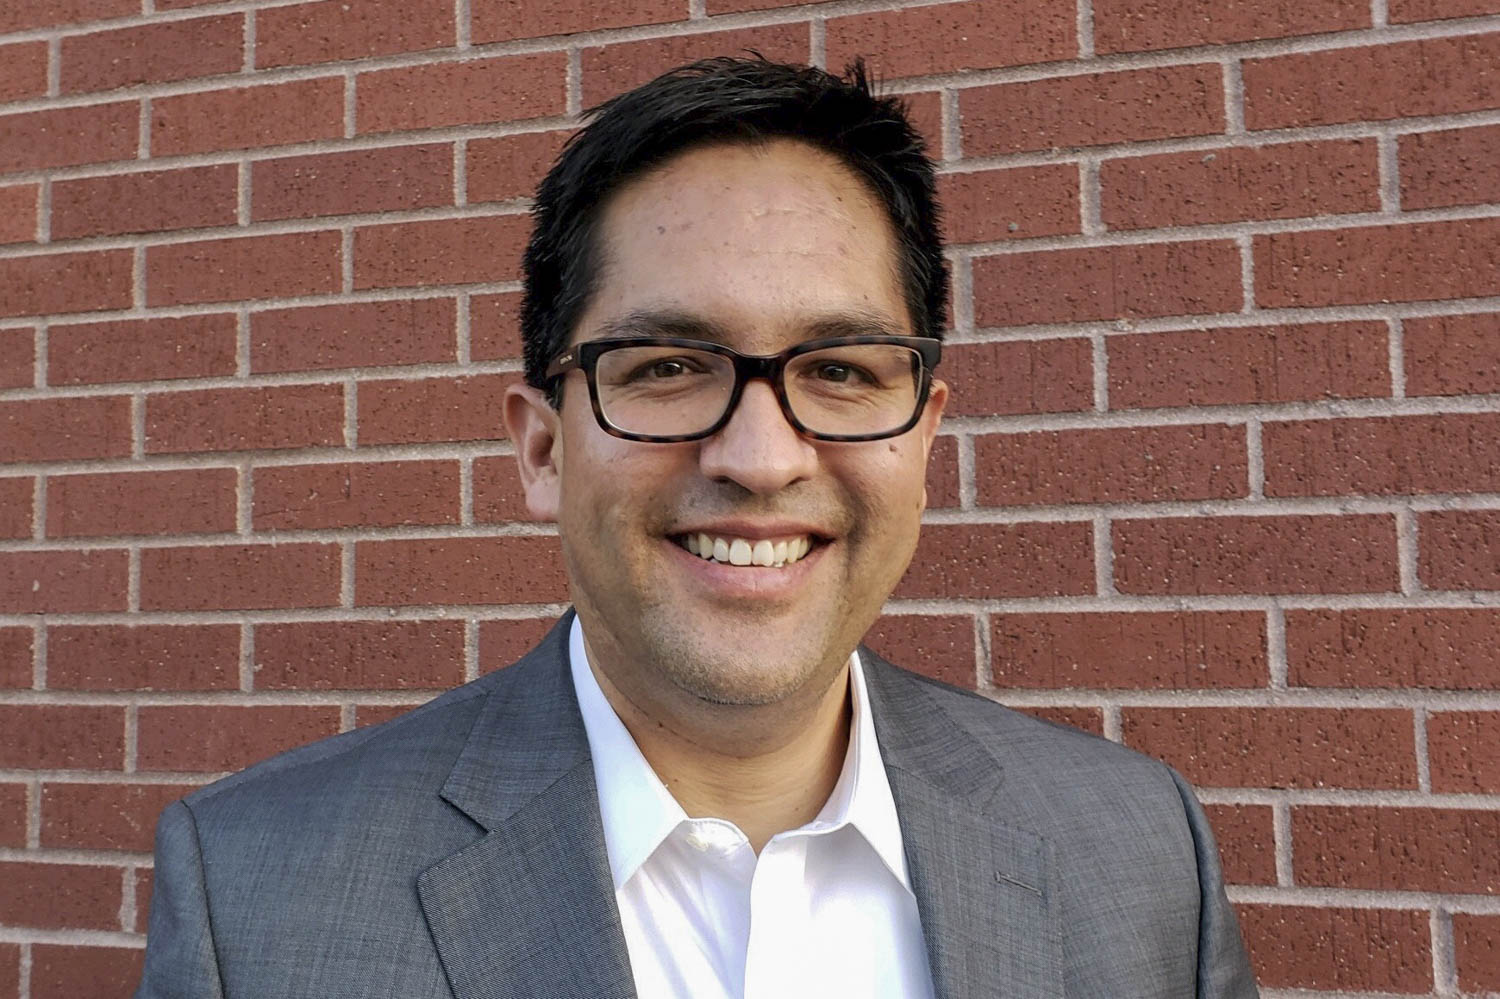 """Alejandro """"Alex"""" Hernandez is widely respected as an educator and innovator who links education and technology."""